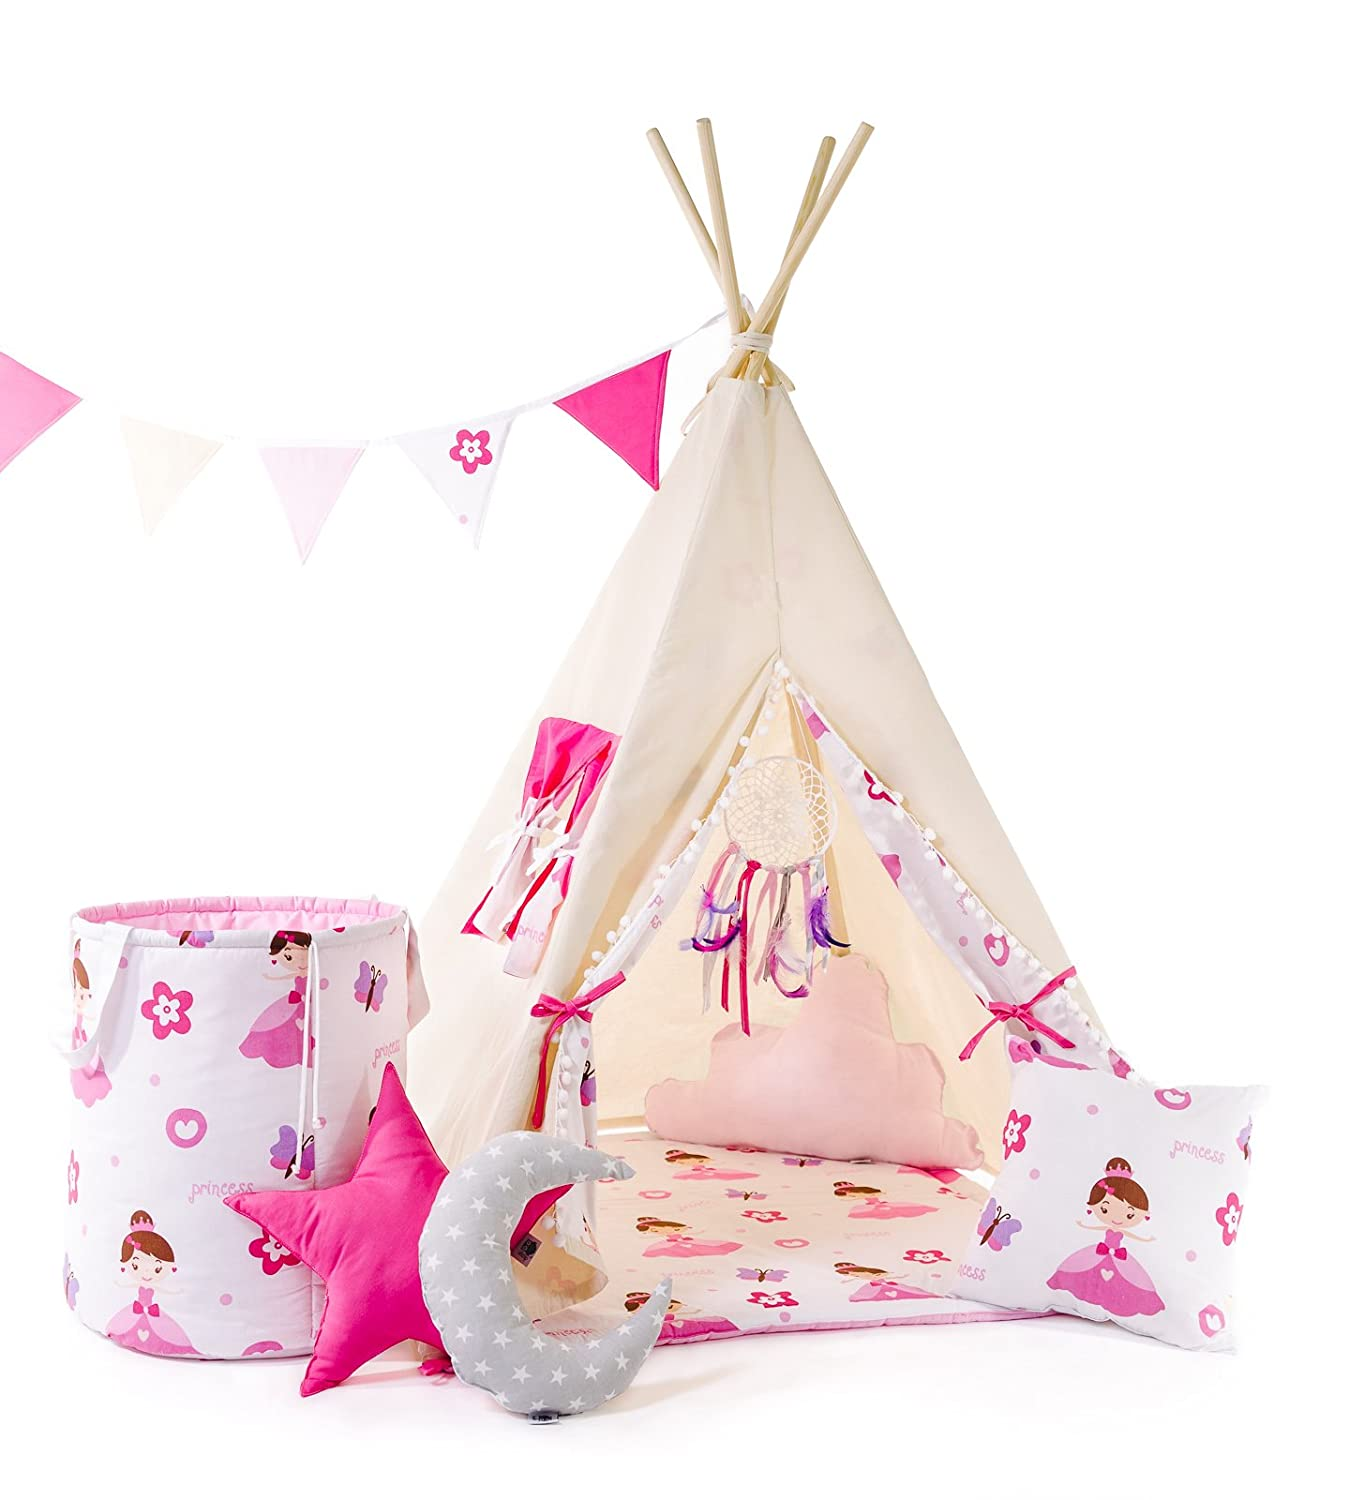 indianerzelt tipi set f r kinder spielzeug spielzelt zelt mit korb tipi set indianer. Black Bedroom Furniture Sets. Home Design Ideas